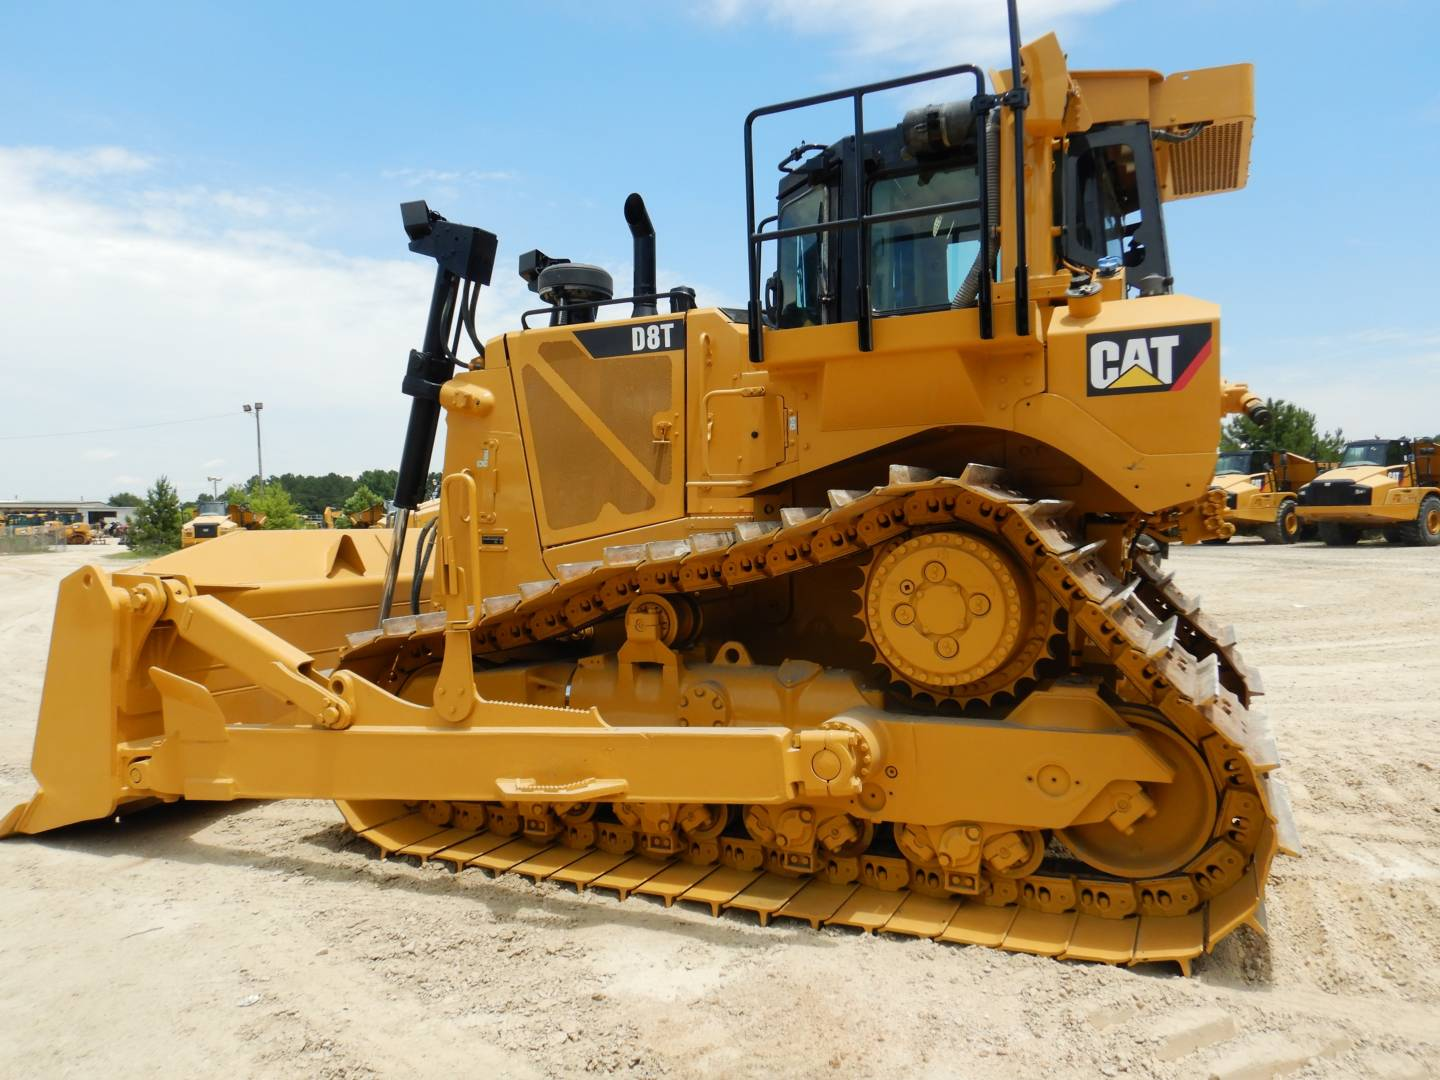 Whayne Walker Cat | Used 2016 Caterpillar D8T for Sale